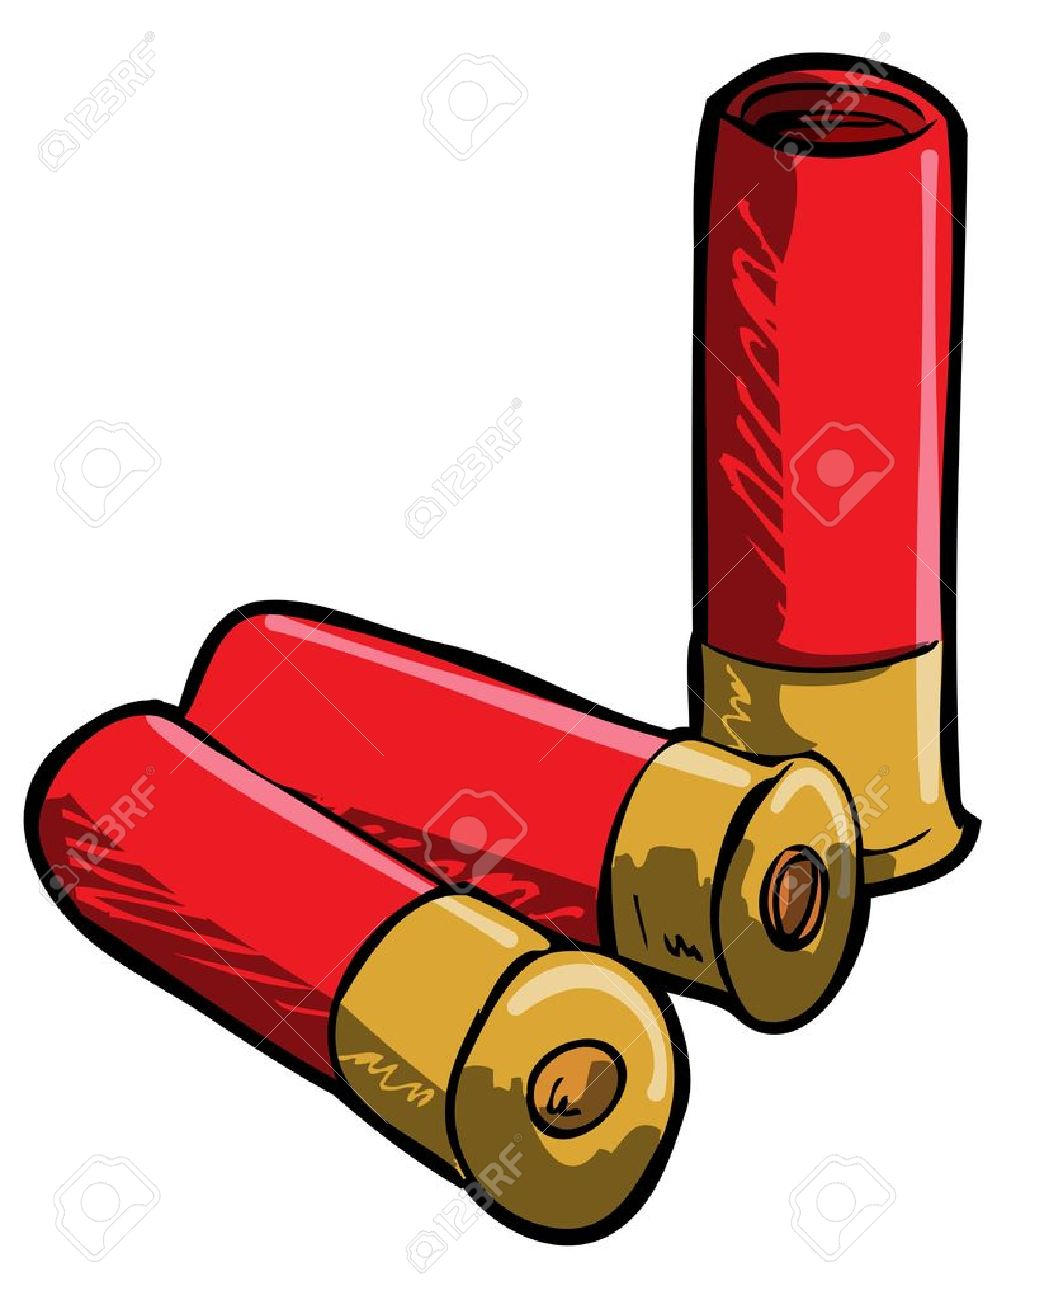 1049x1300 Hand Drawn Illustration Of Shotgun Shells. Isolated Royalty Free